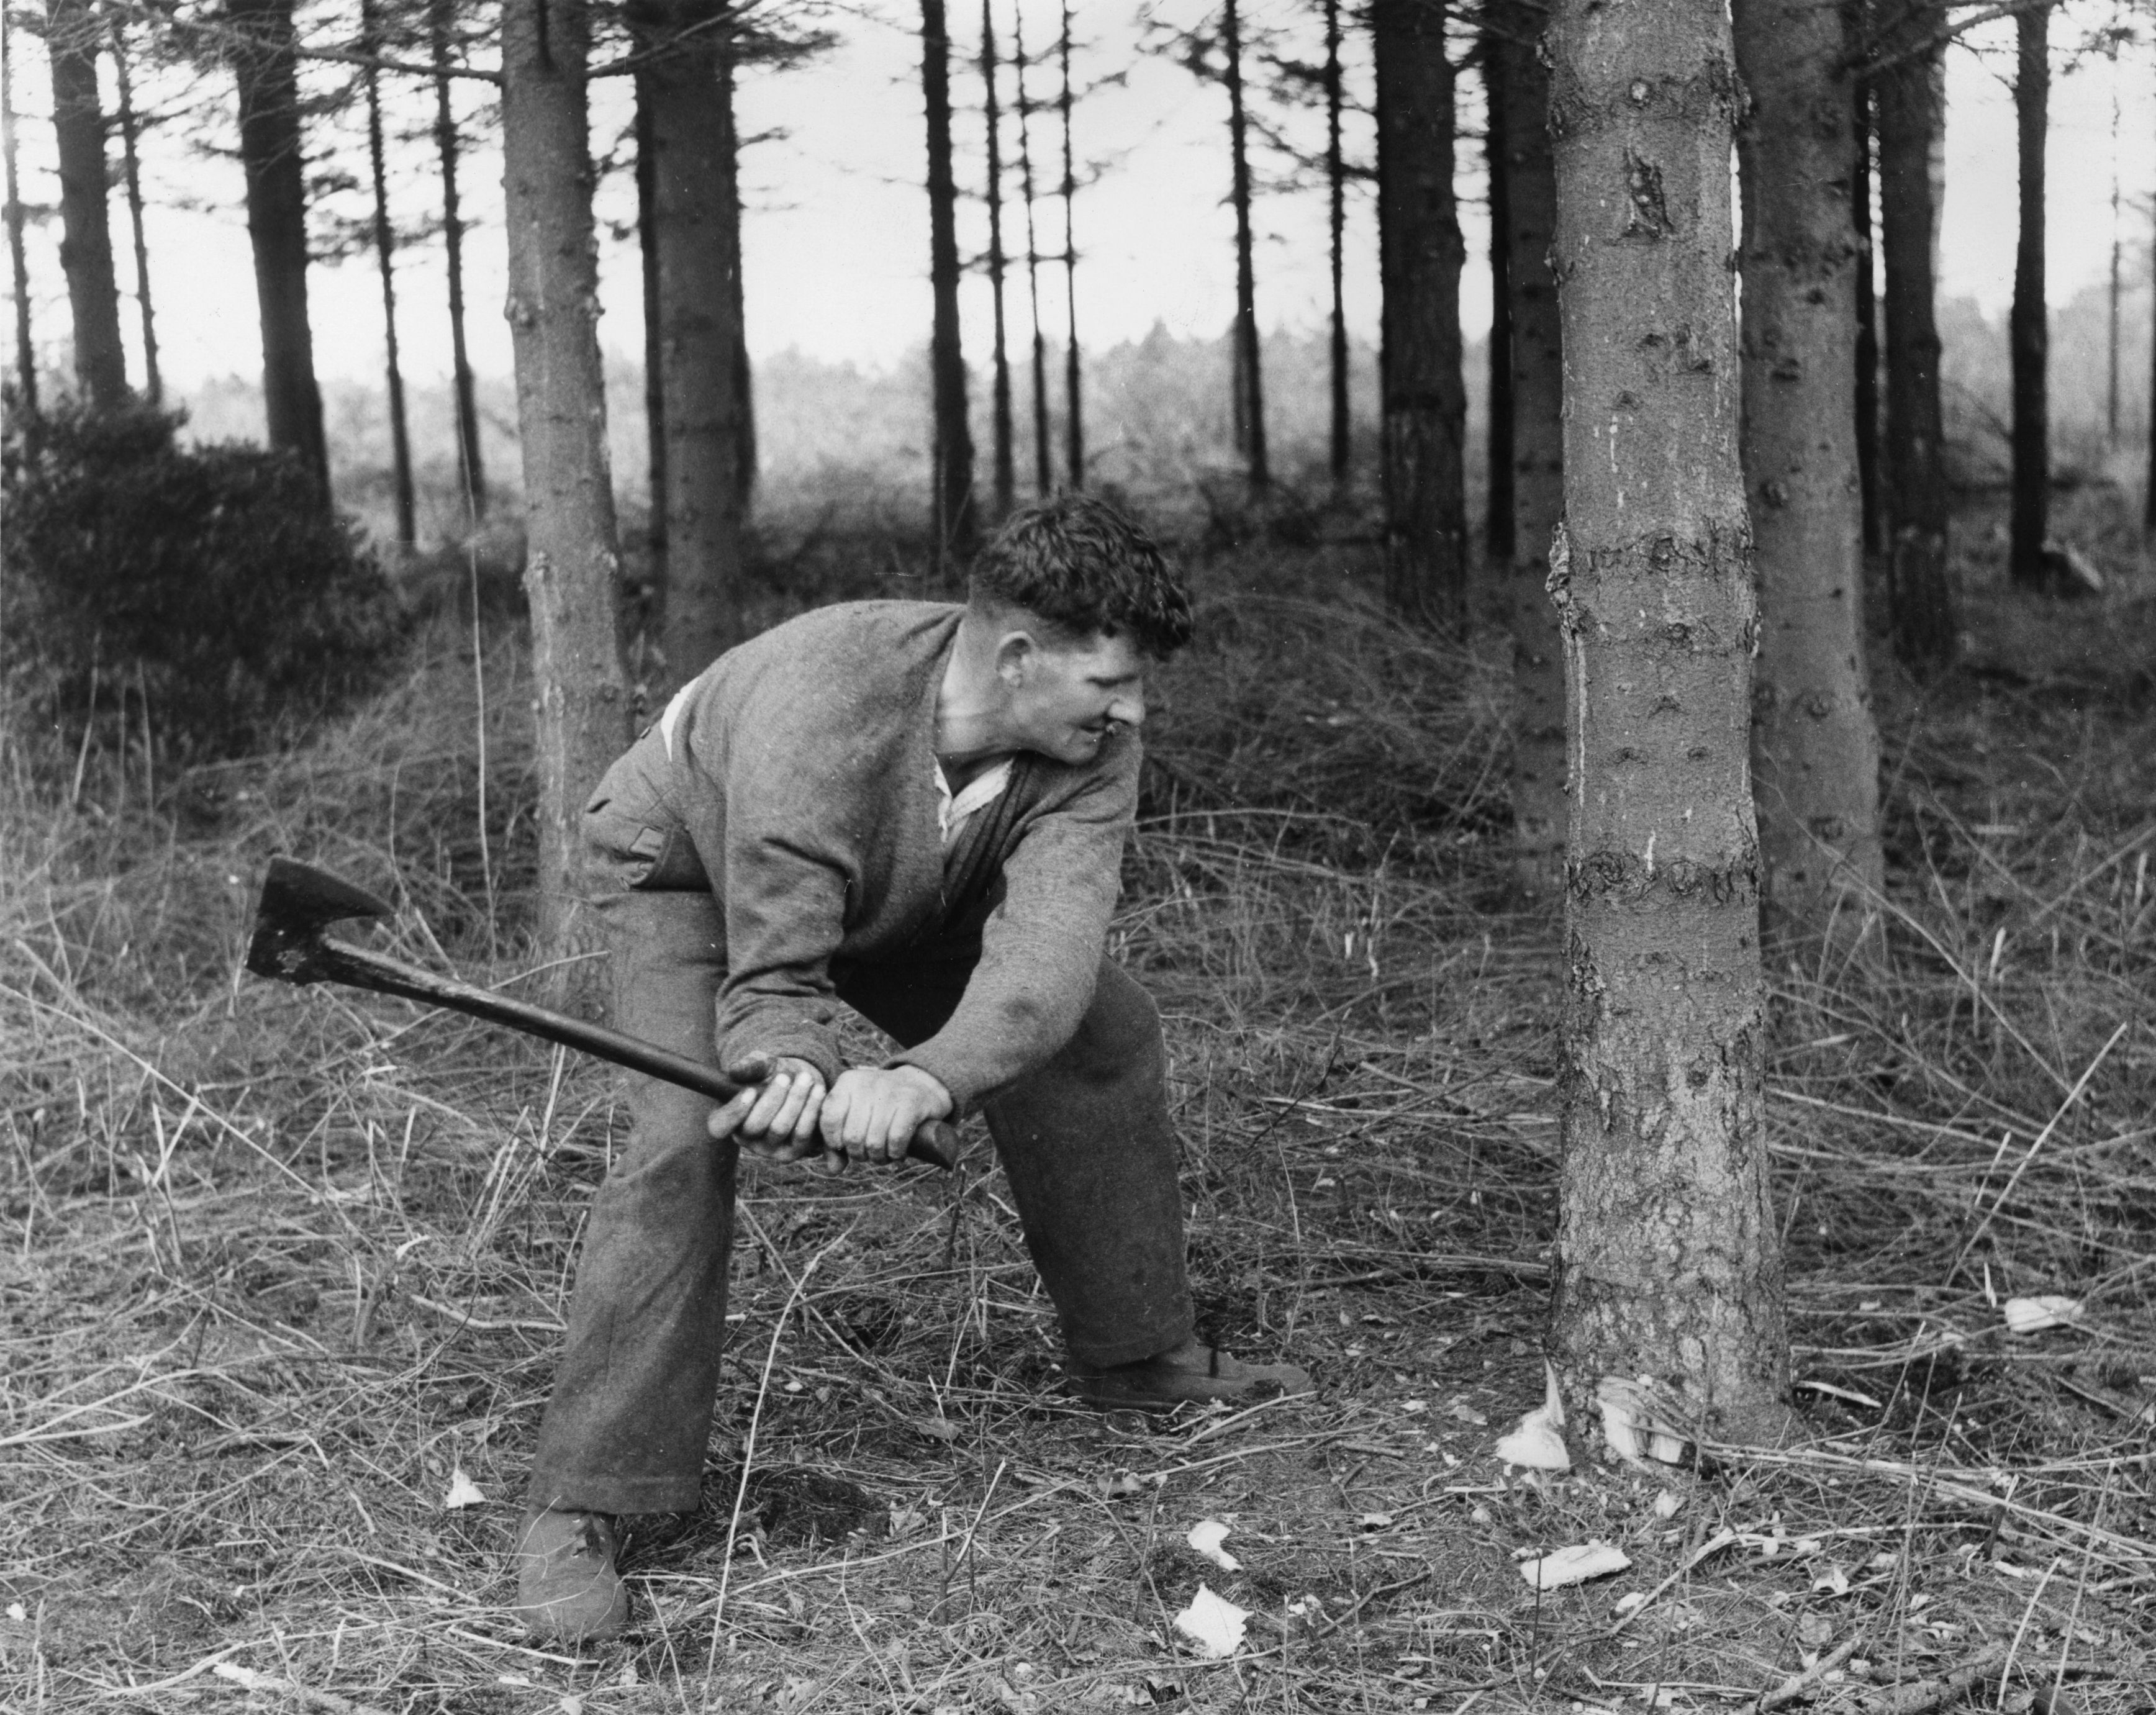 A man cuts down a tree in the forest